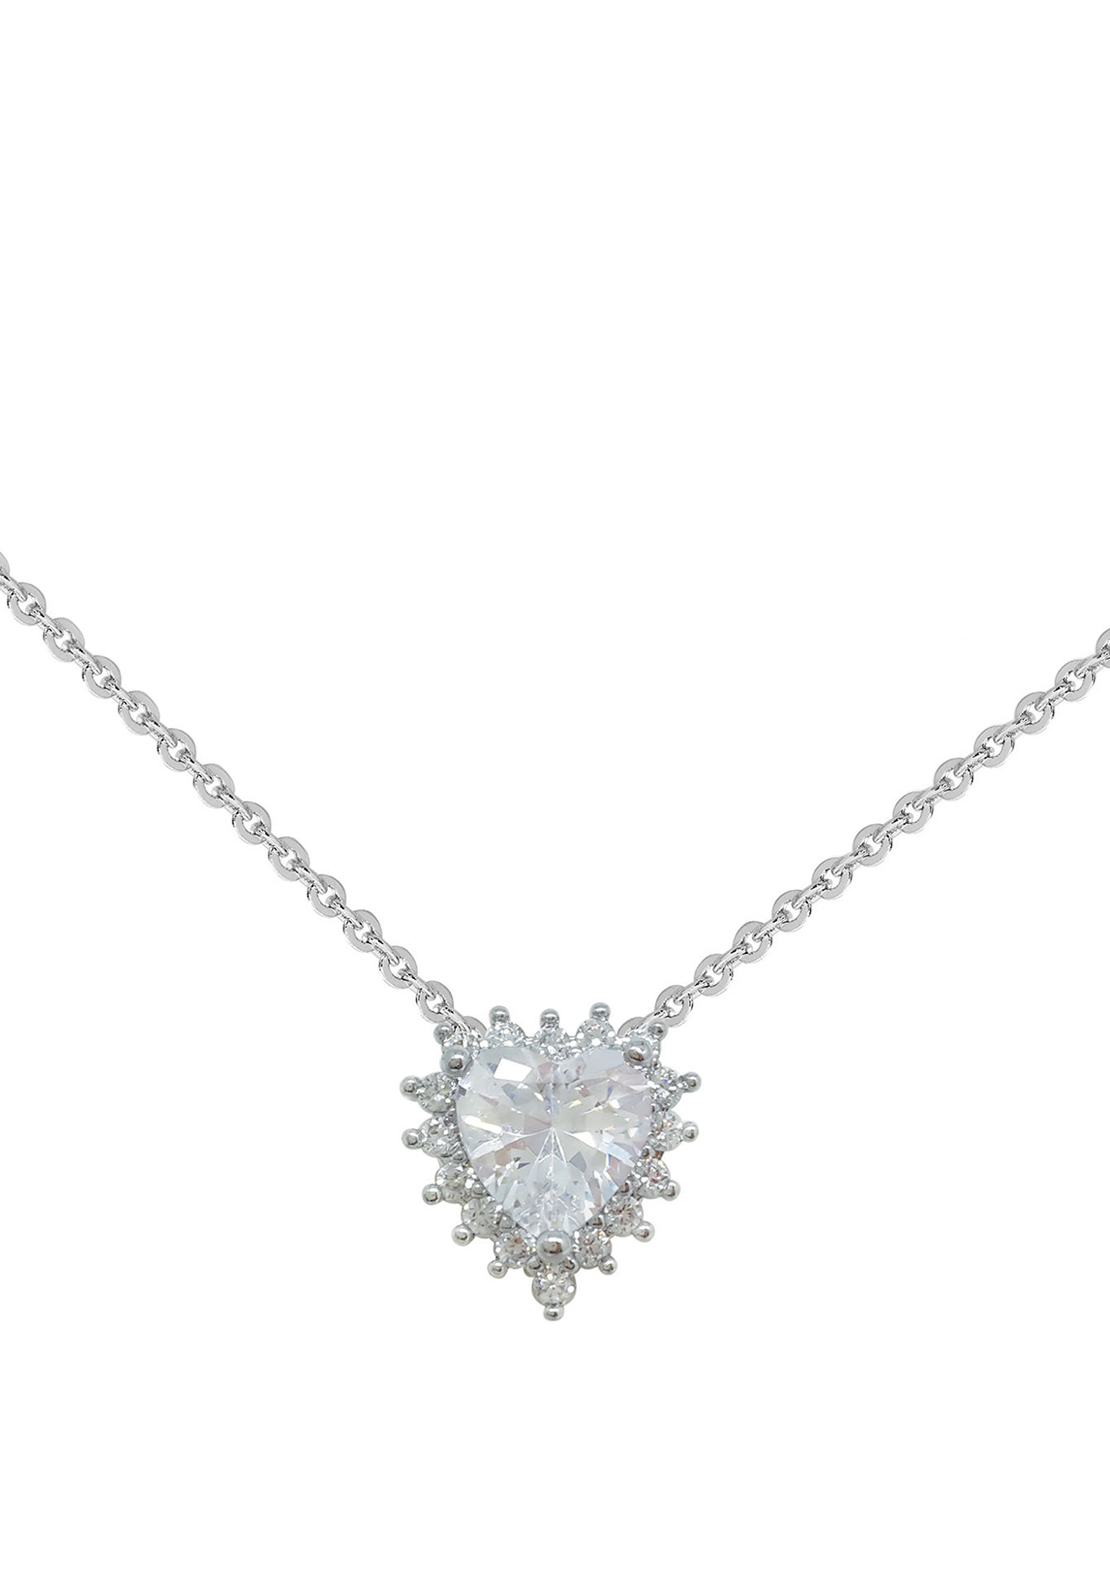 Tipperary Crystal Pave Heart Pendant Necklace, Silver